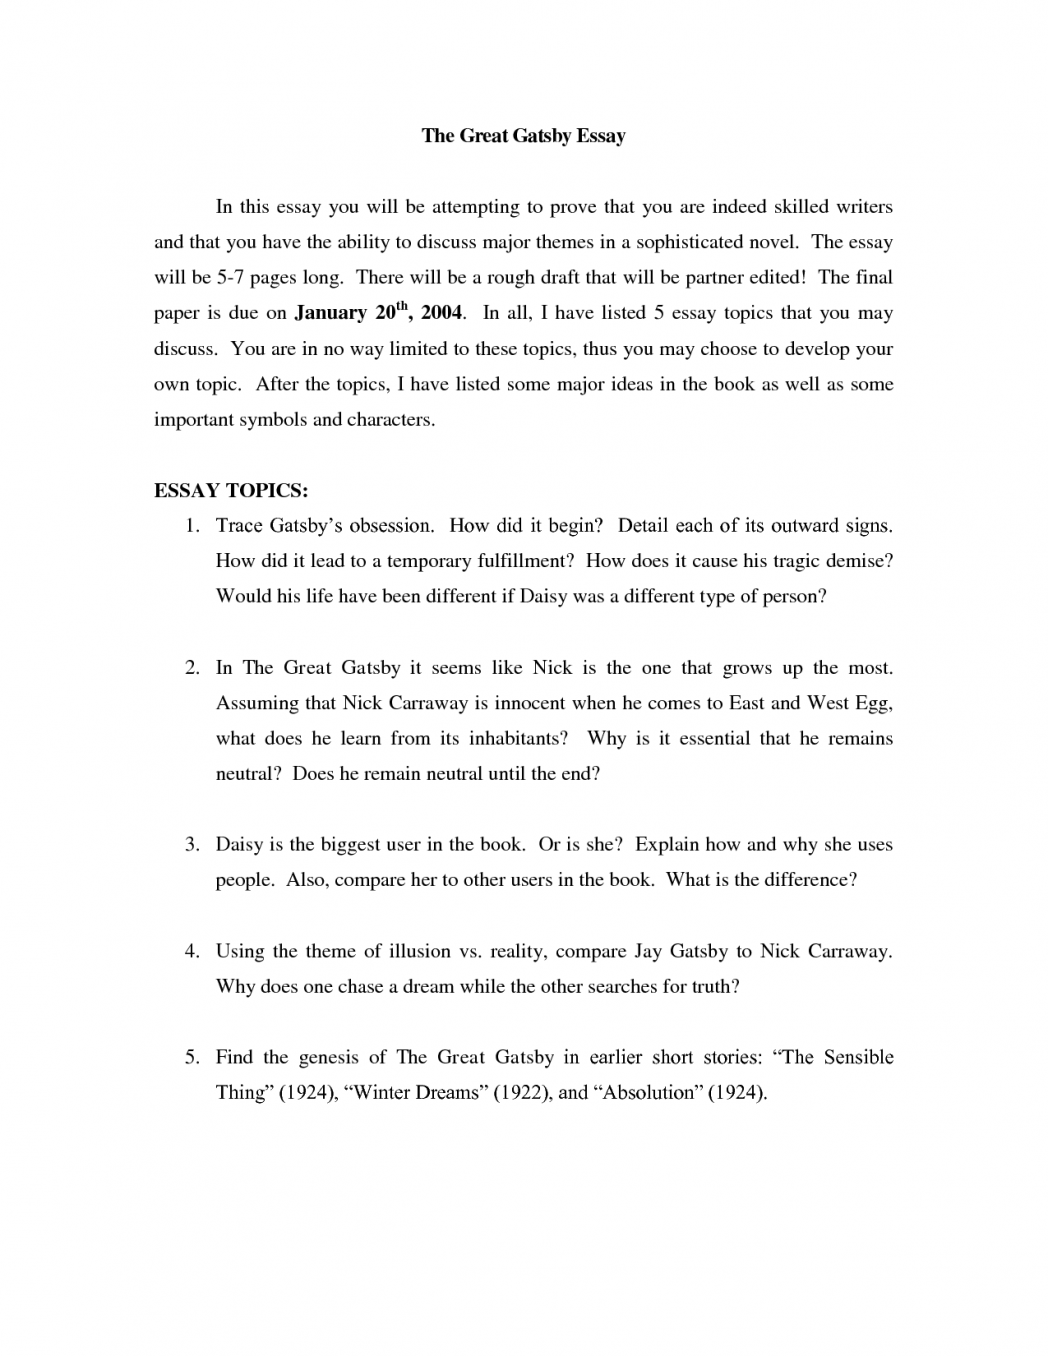 014 Essay Example On American Dreamt Gatsby Thesis The Future Is Still Possible Argumentative Statement For Template 4ni Attainable Argument Prompt Alive Research About Topics 1048x1356 Fantastic Great Dream Conclusion Pdf Free Full